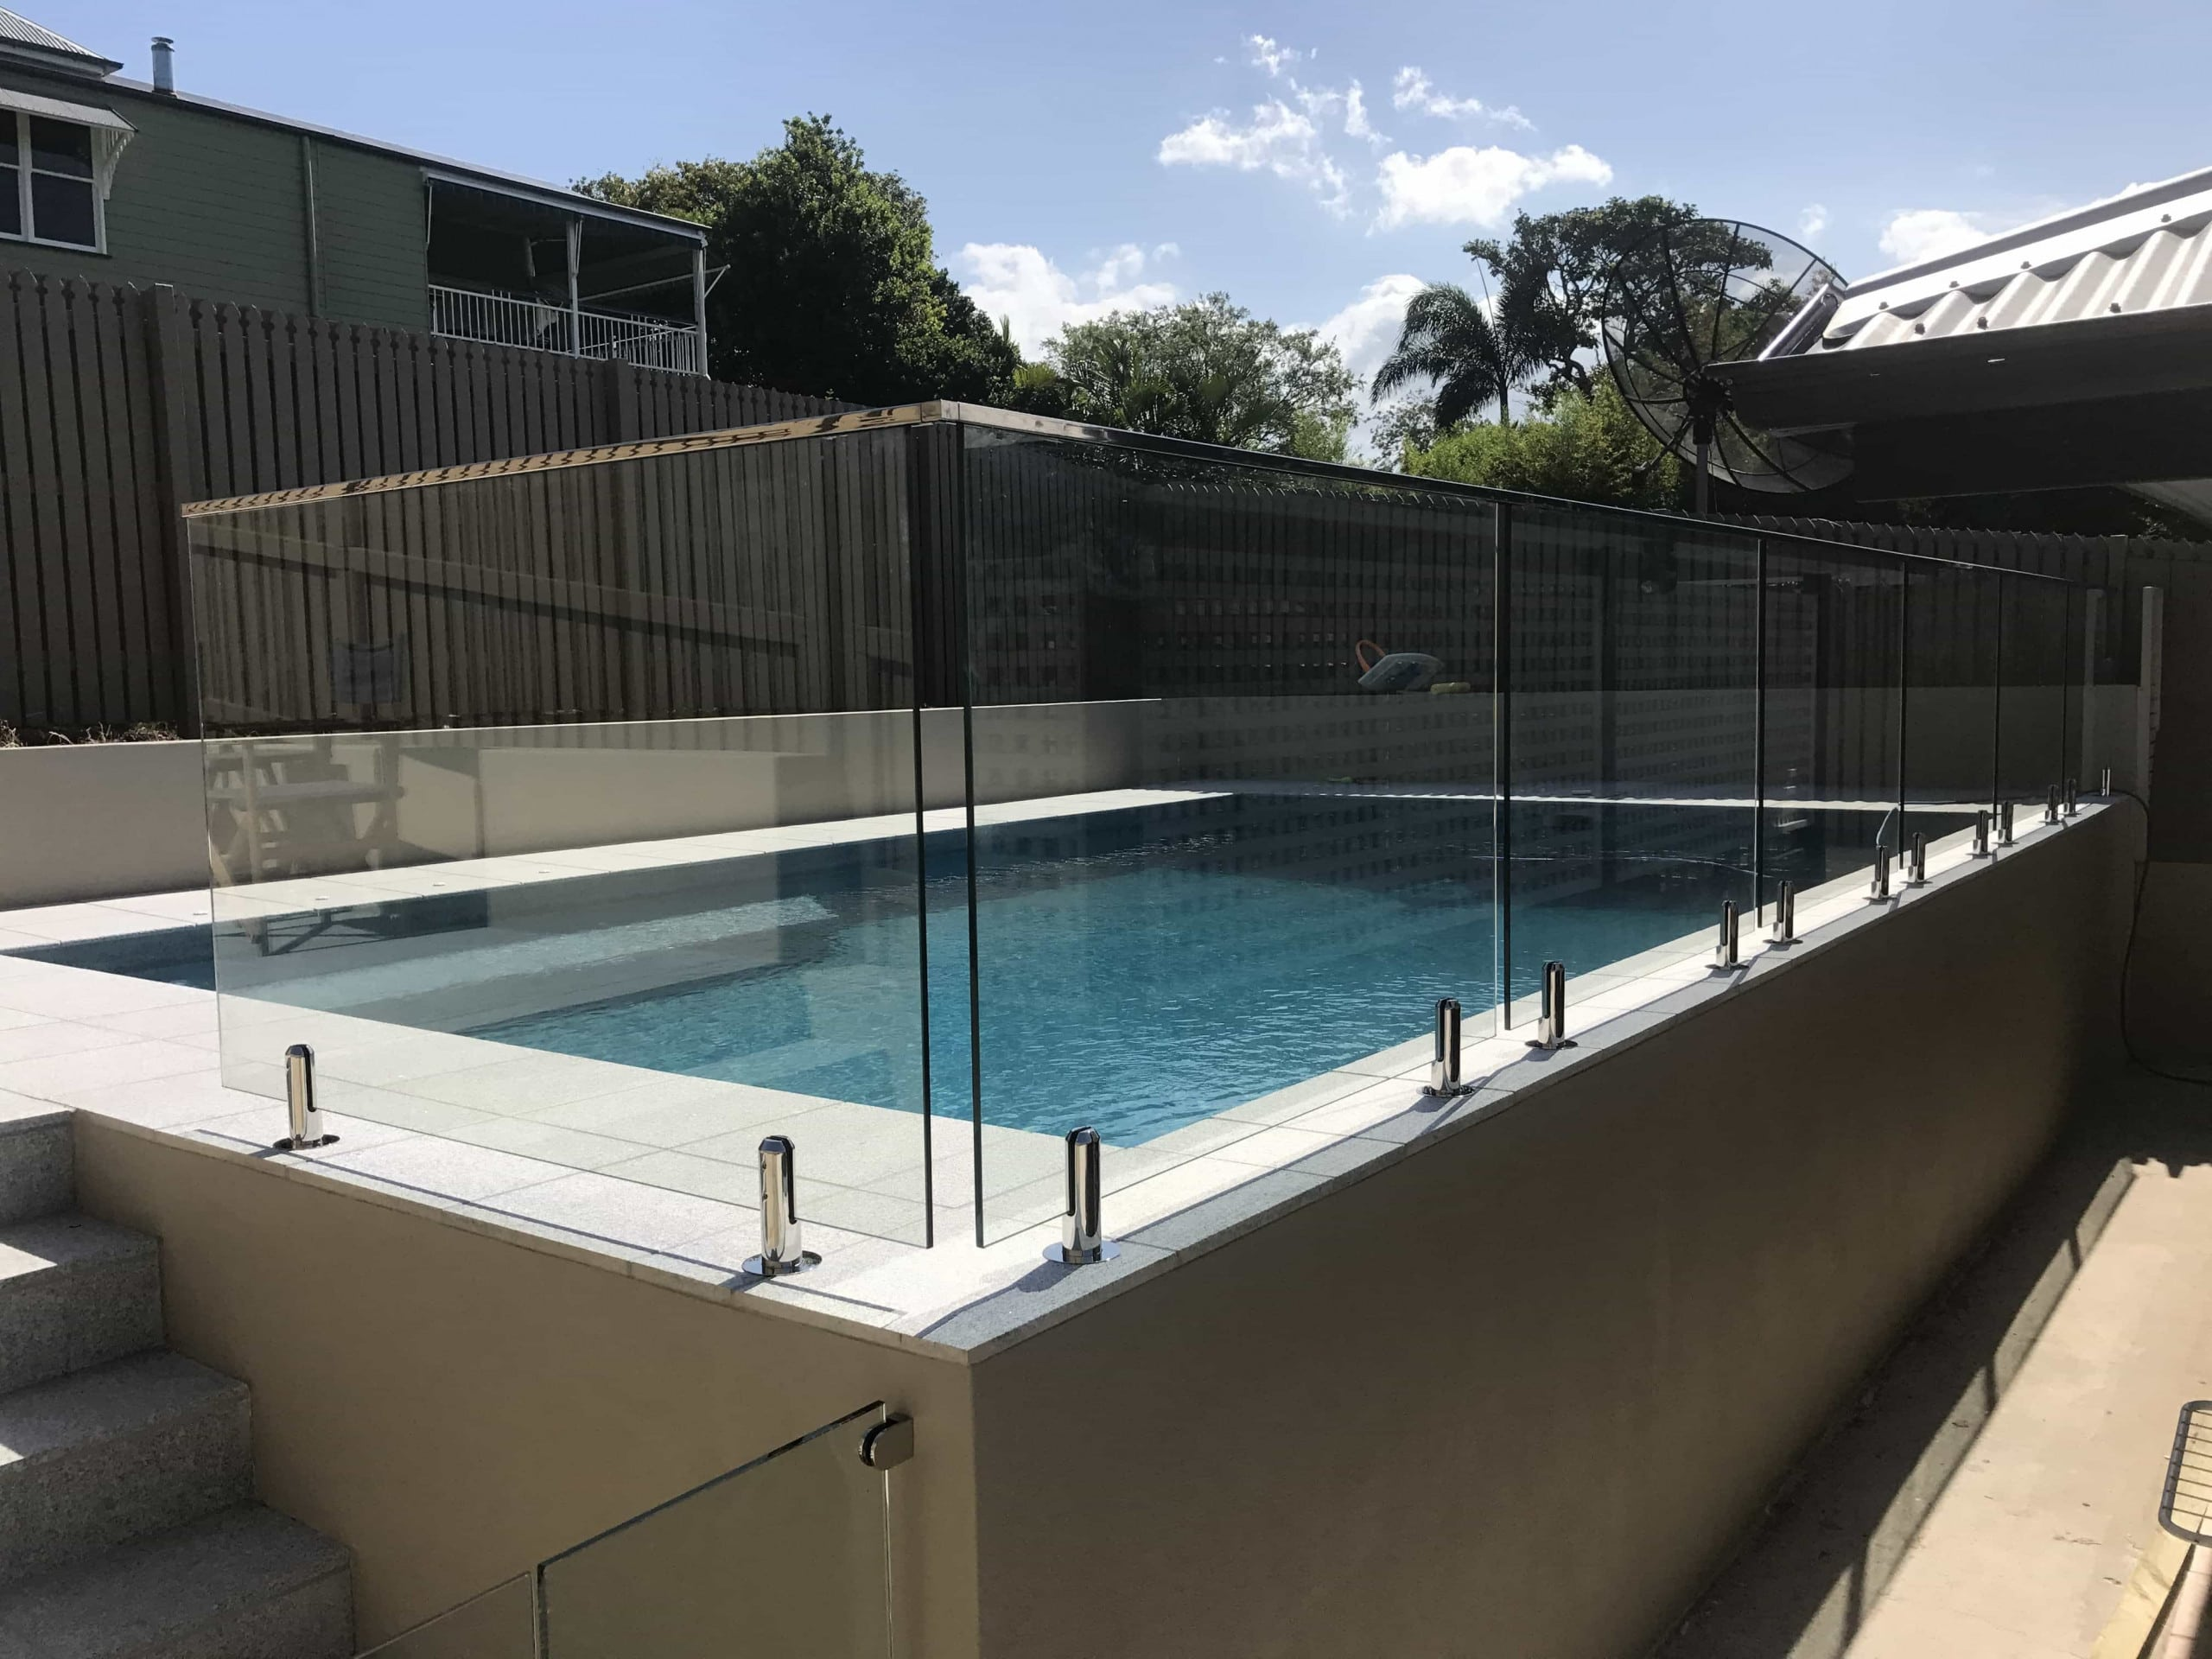 How Safe is Glass Pool Fencing? - ALS Glass Works